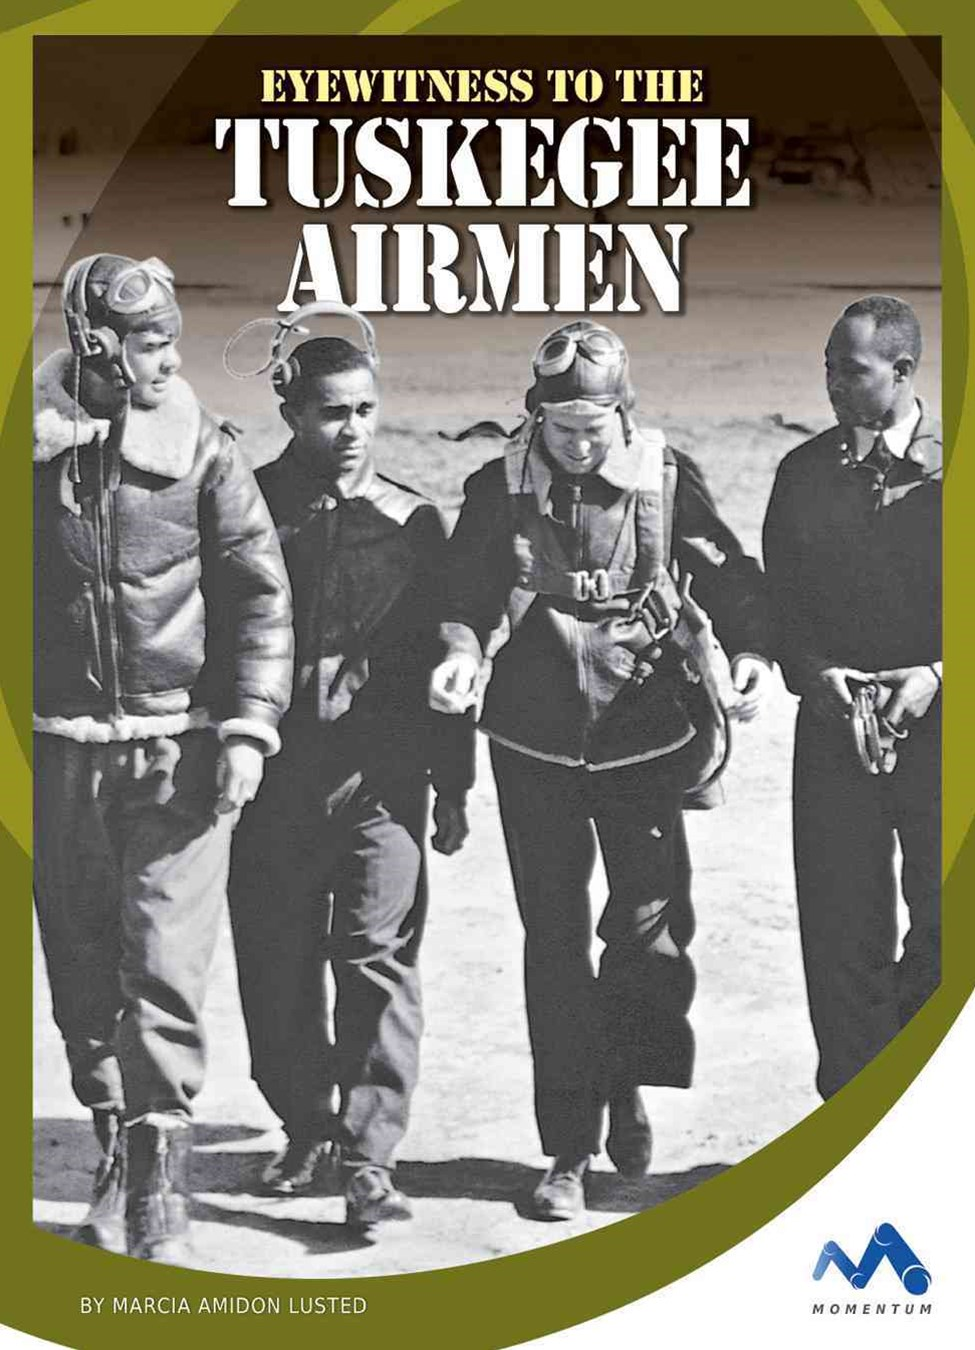 Eyewitness to the Tuskegee Airmen